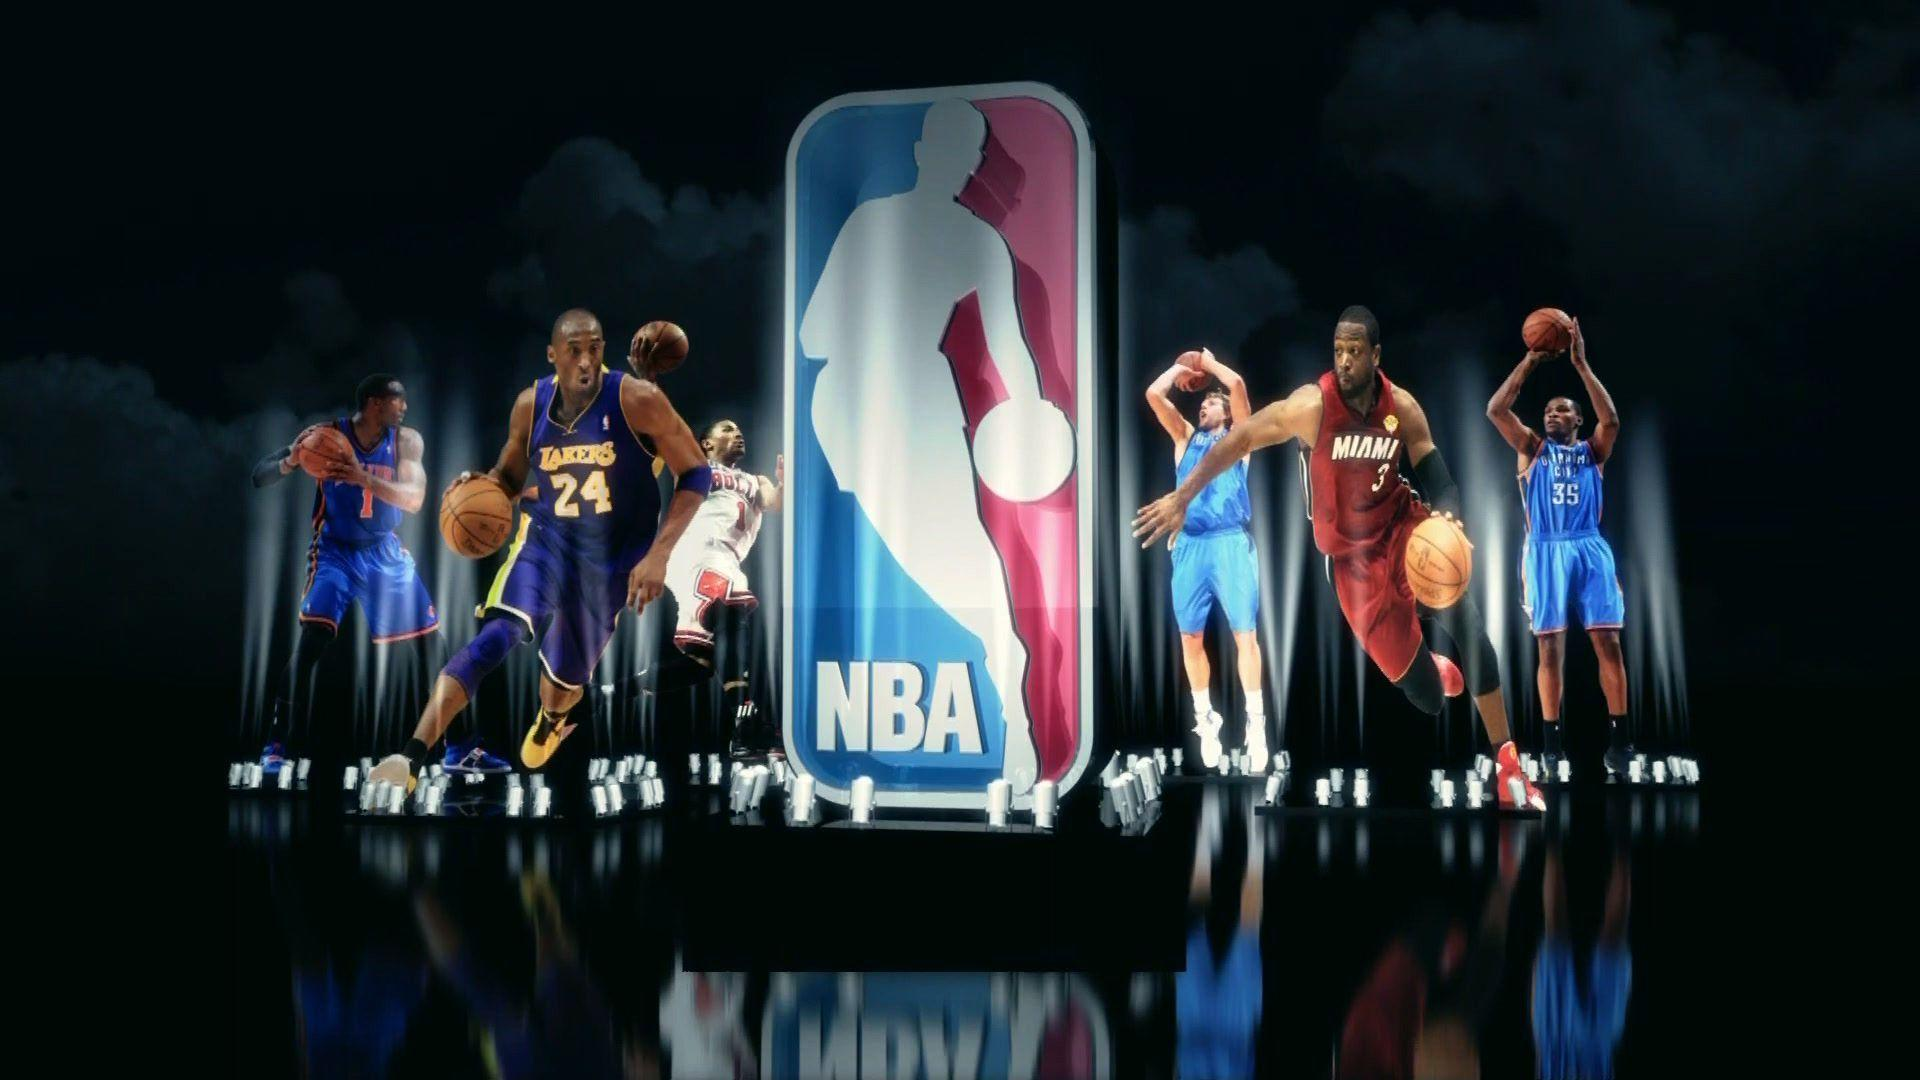 NBA Wallpapers HD | HD Wallpapers, Backgrounds, Images, Art Photos.